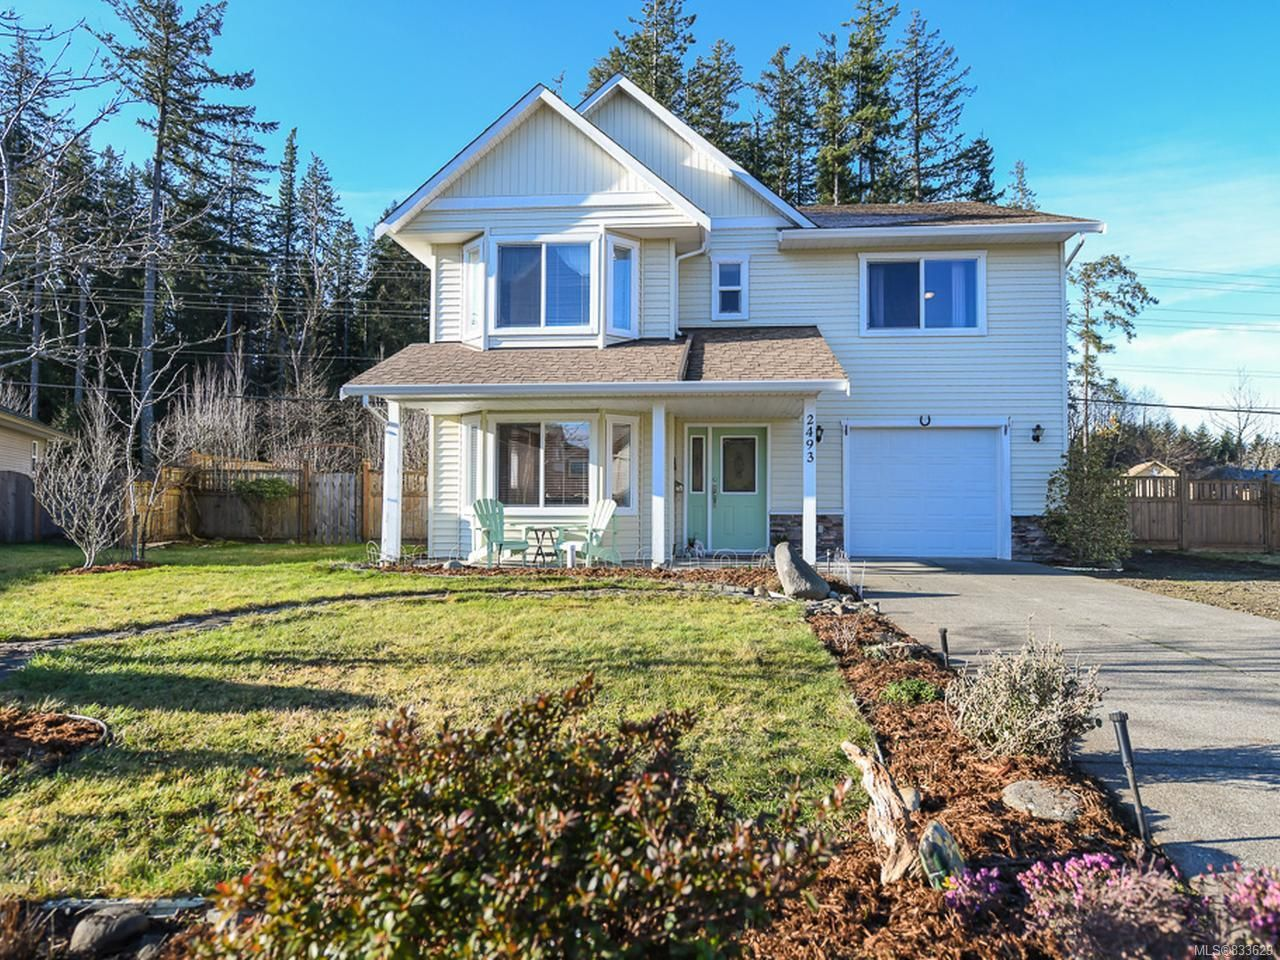 Main Photo: 2493 Kinross Pl in COURTENAY: CV Courtenay East House for sale (Comox Valley)  : MLS®# 833629